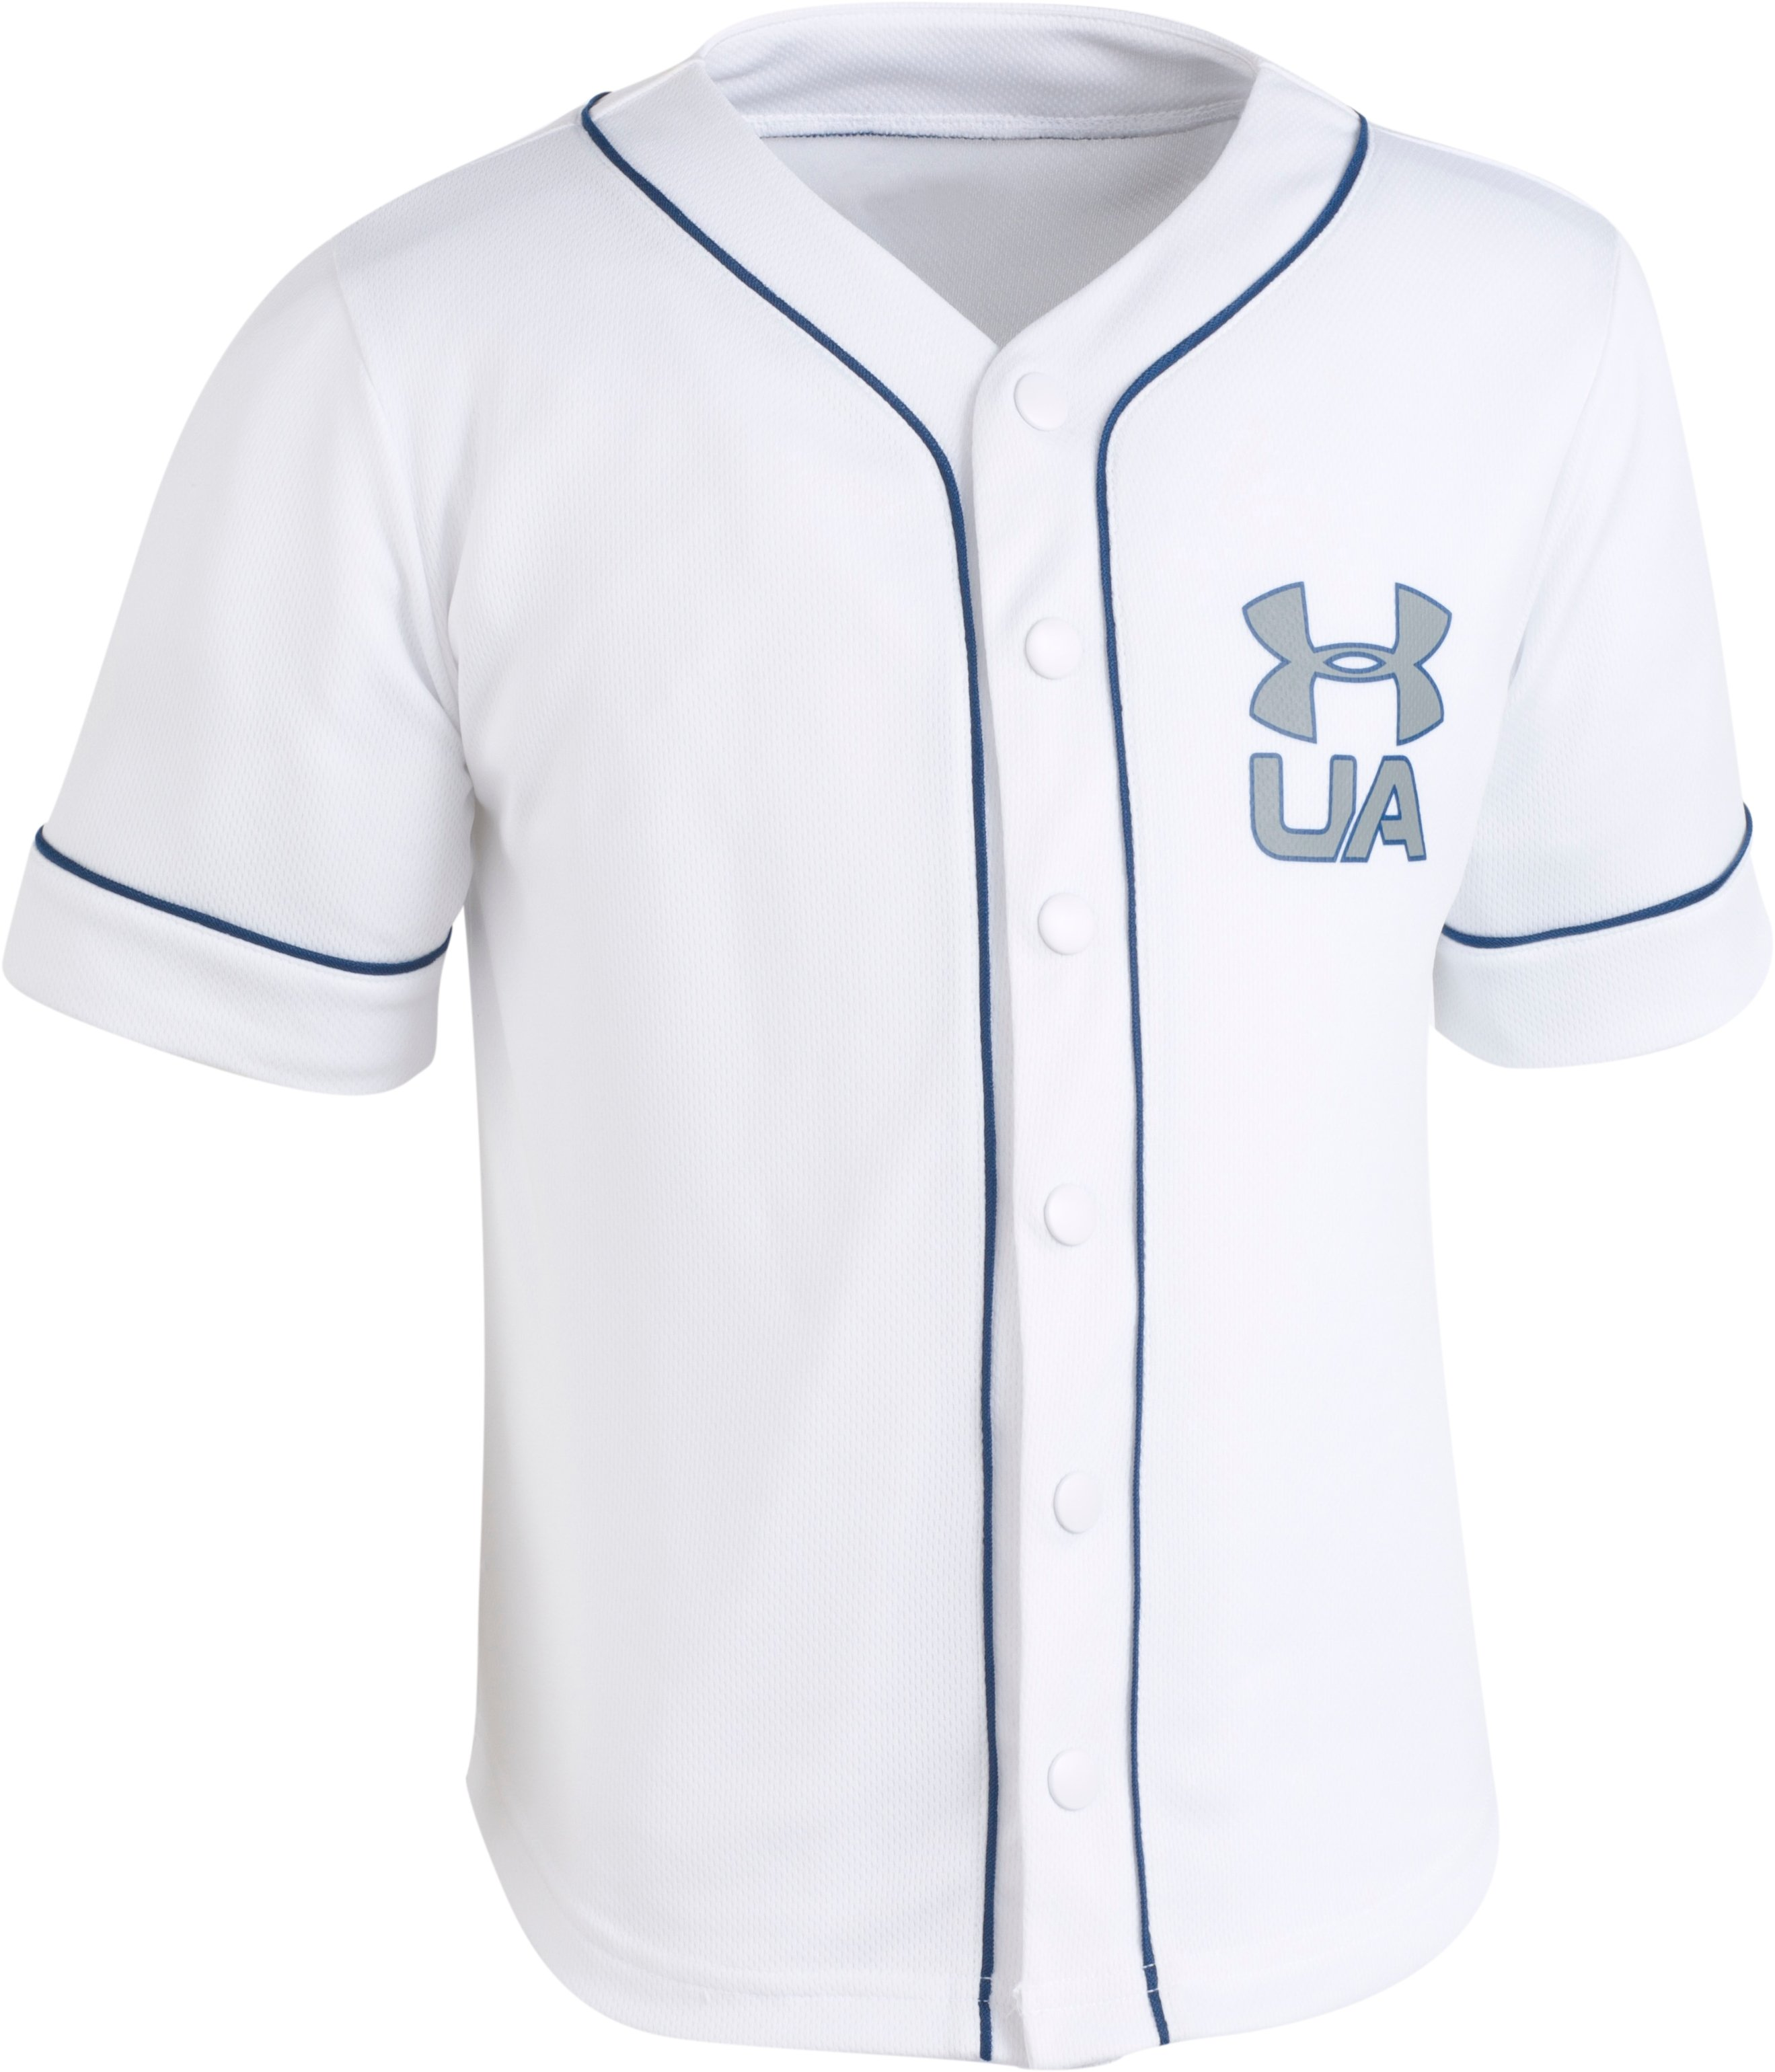 Boys' Toddler UA Homerun Baseball Jersey T-Shirt, White, zoomed